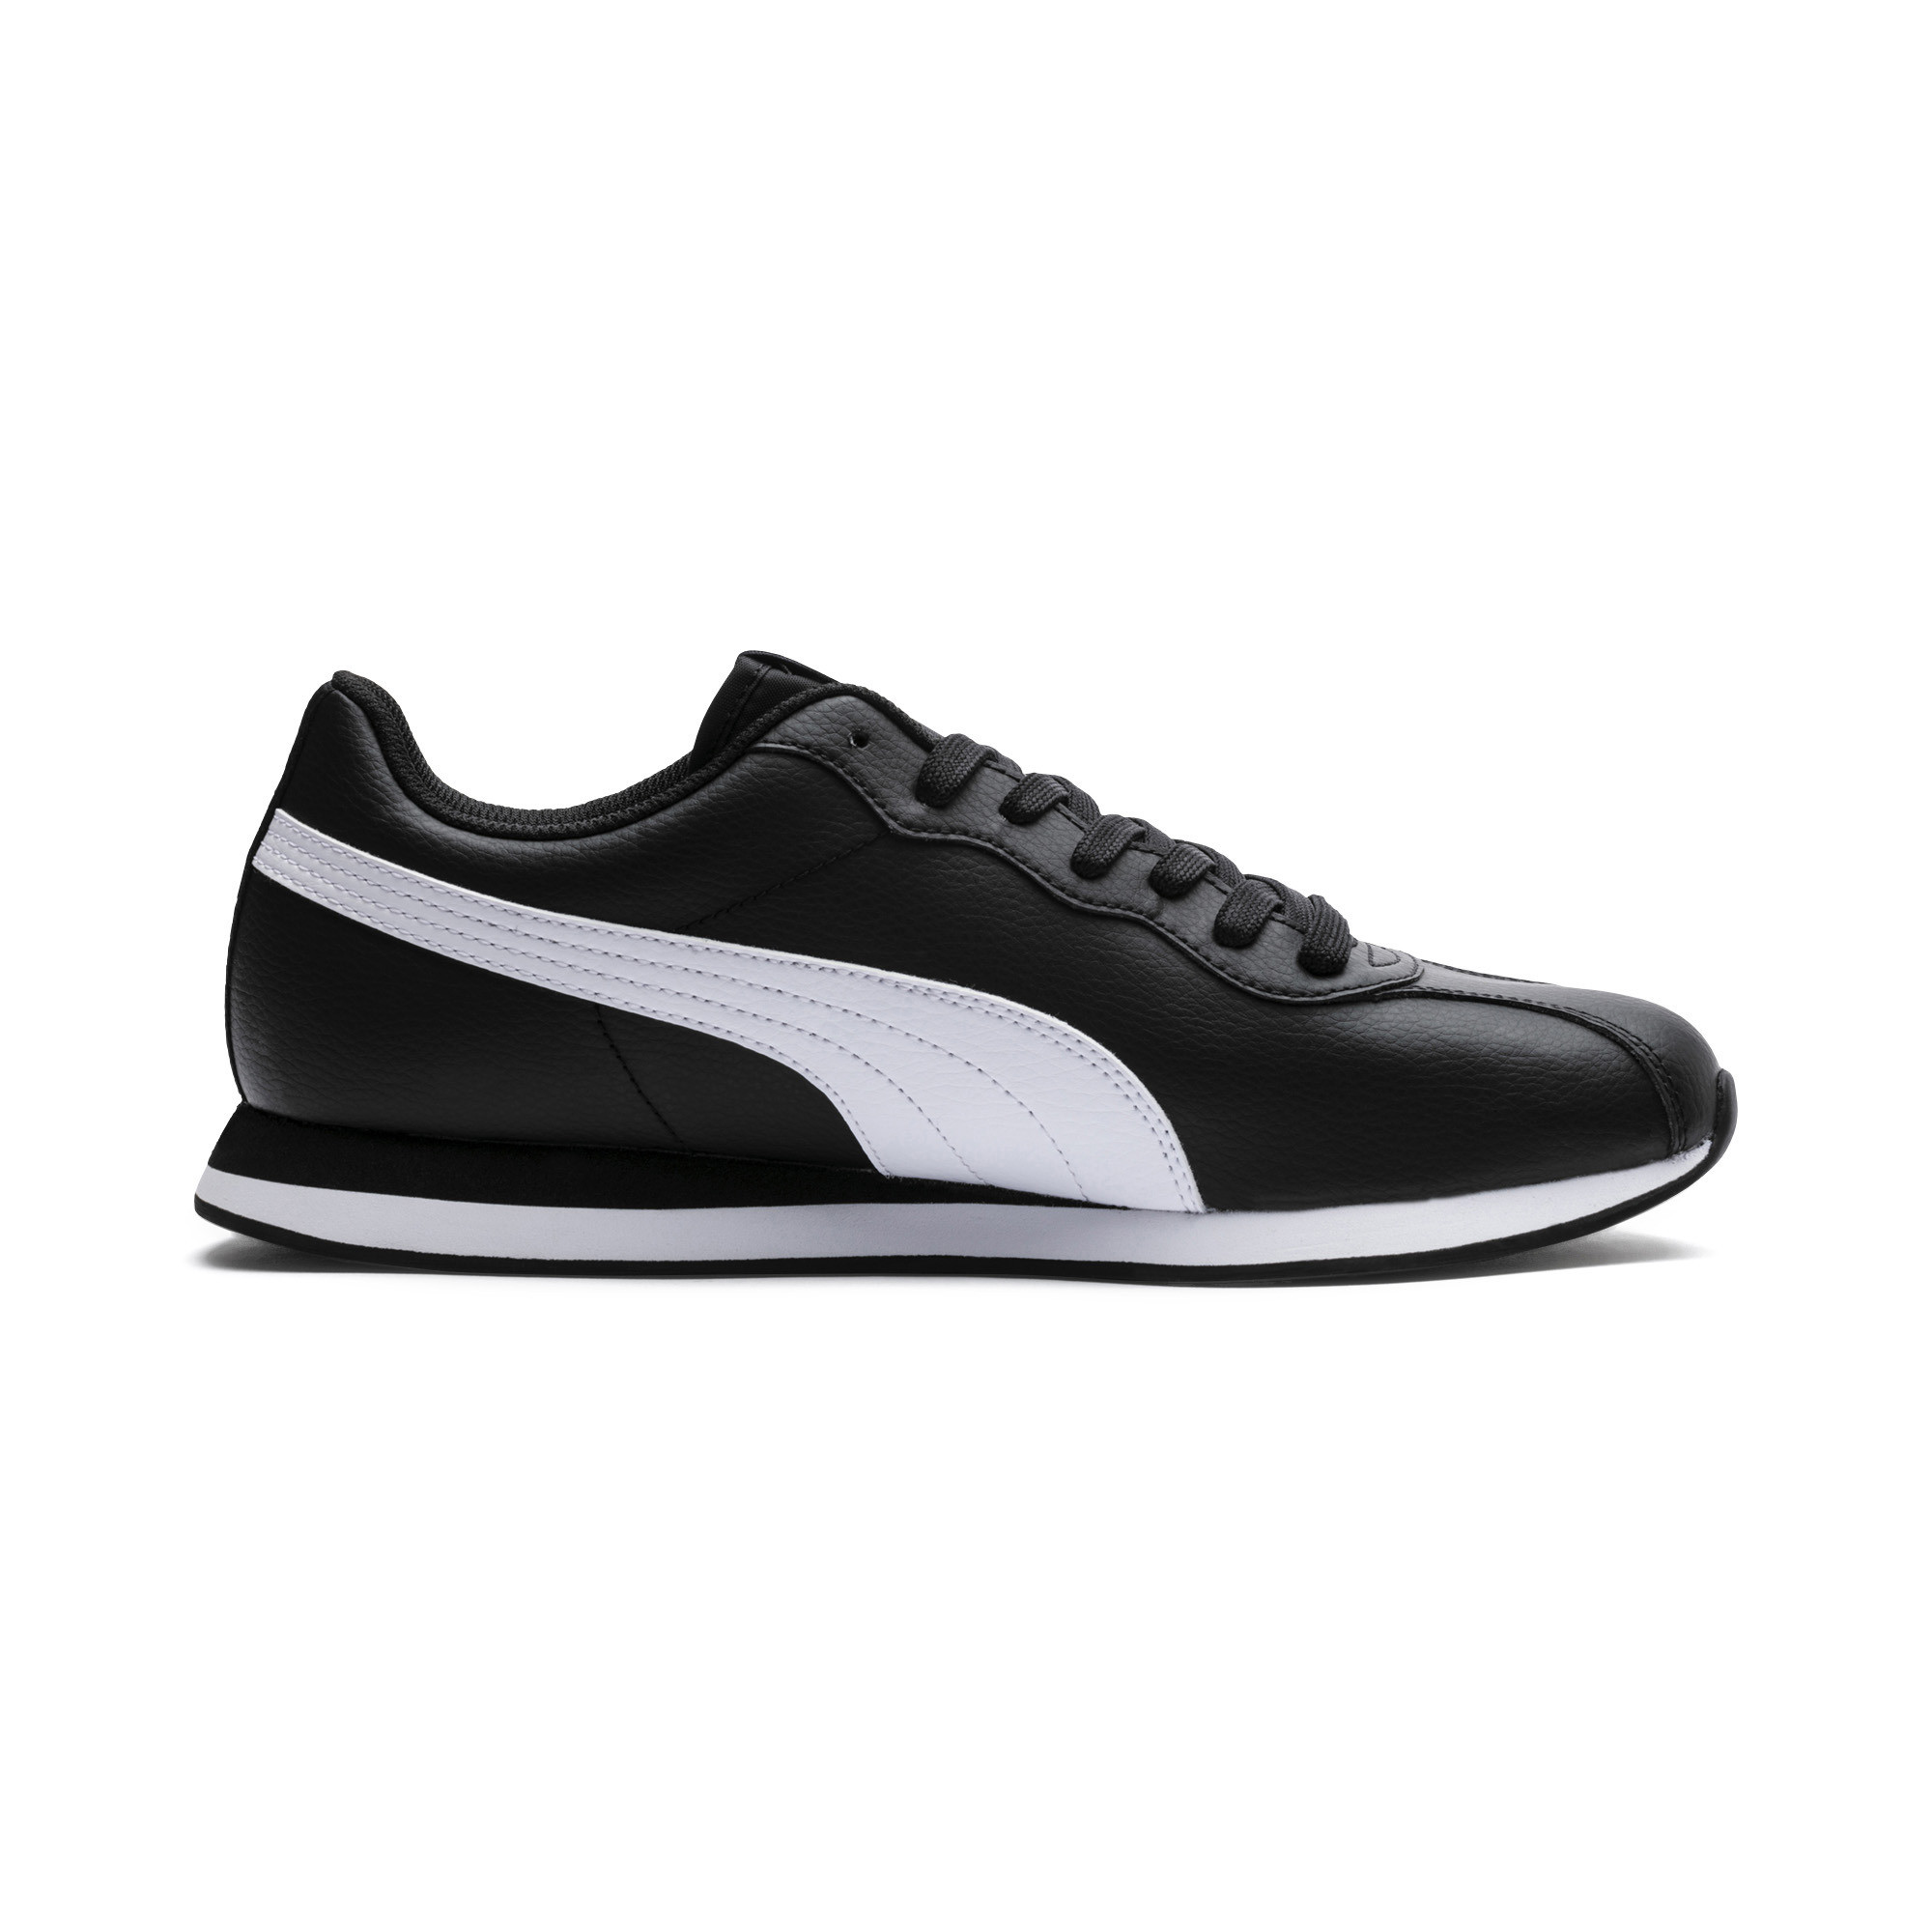 PUMA-Turin-II-Men-039-s-Sneakers-Men-Shoe-Basics thumbnail 36